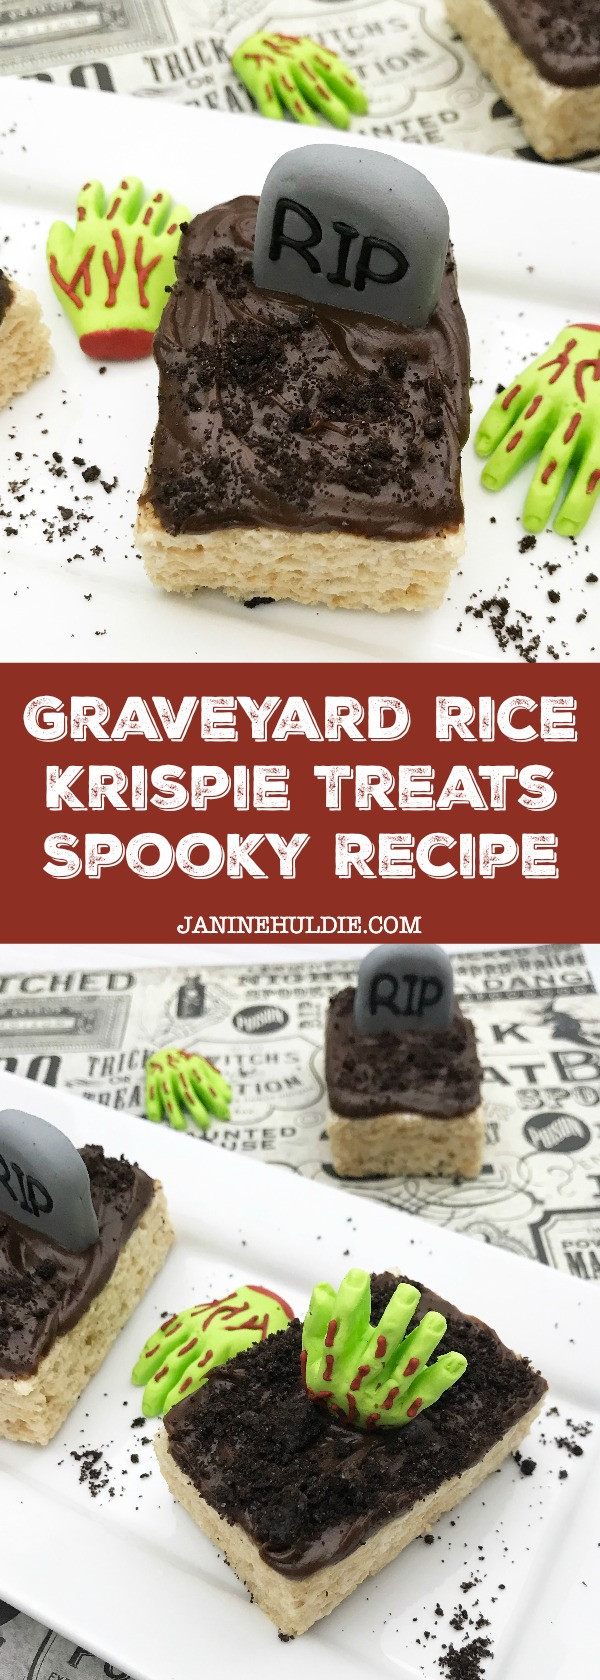 Graveyard Rice Krispie Treats Spooky Recipe